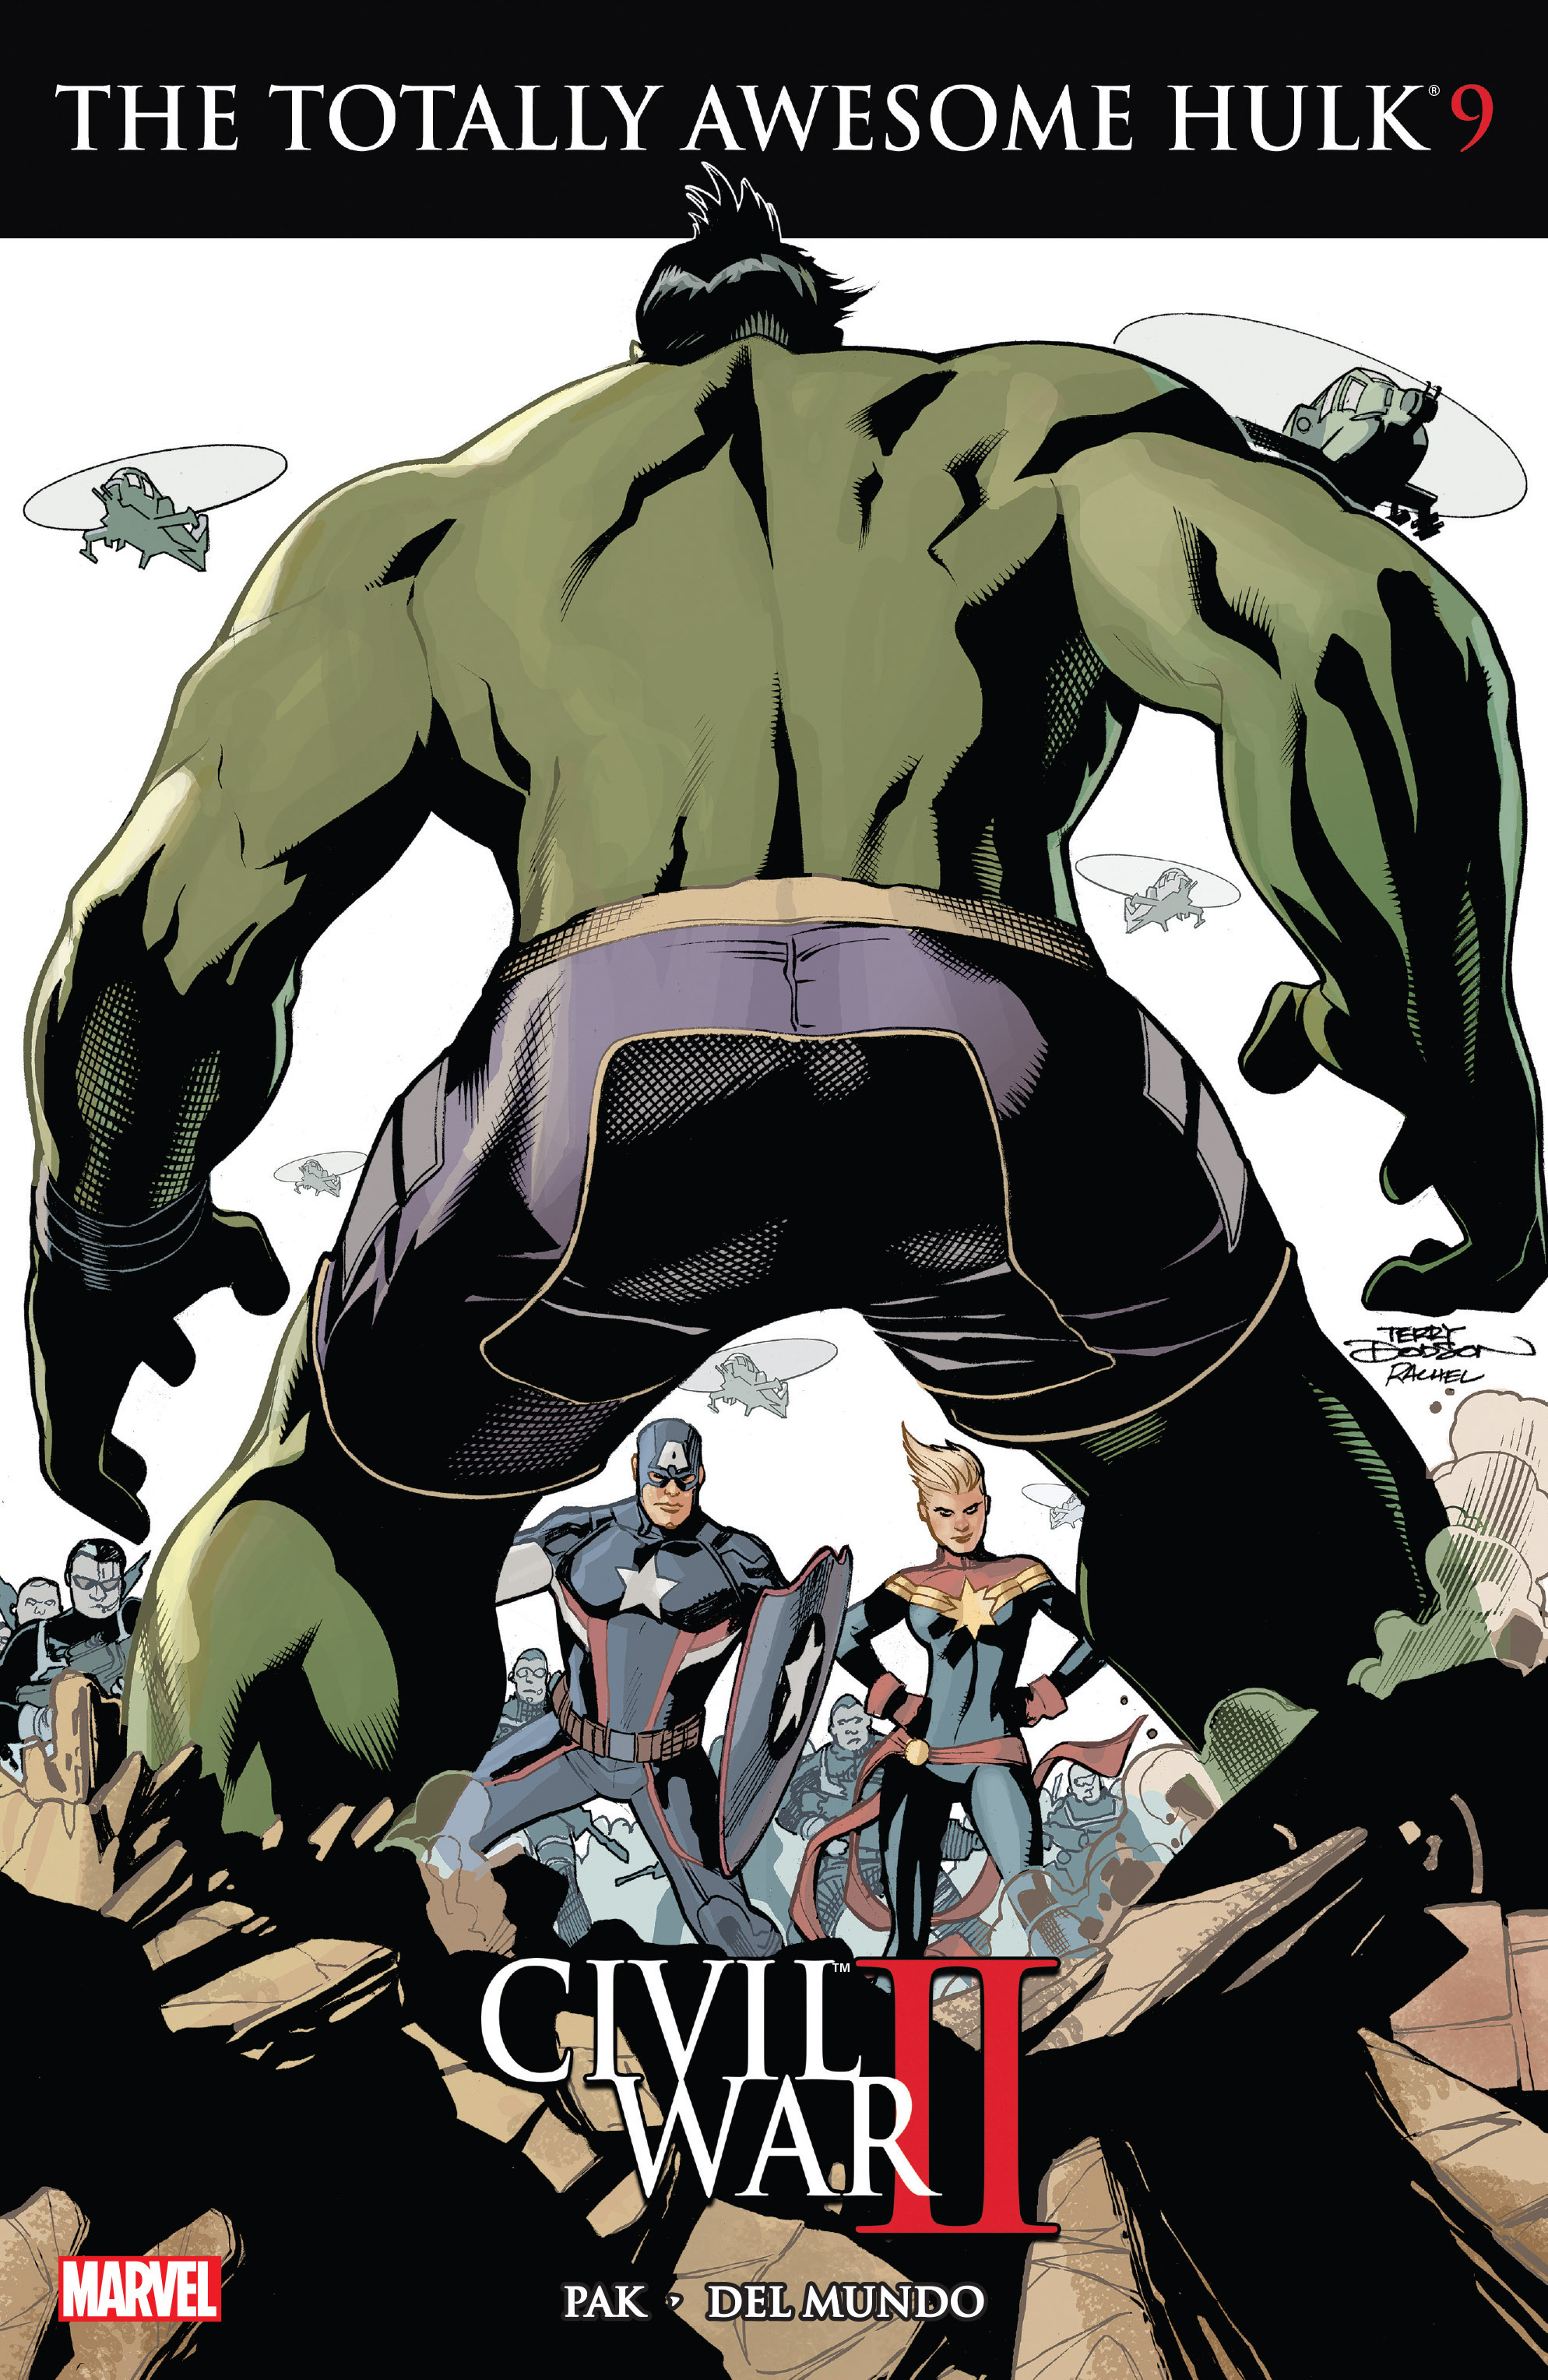 The Totally Awesome Hulk #09